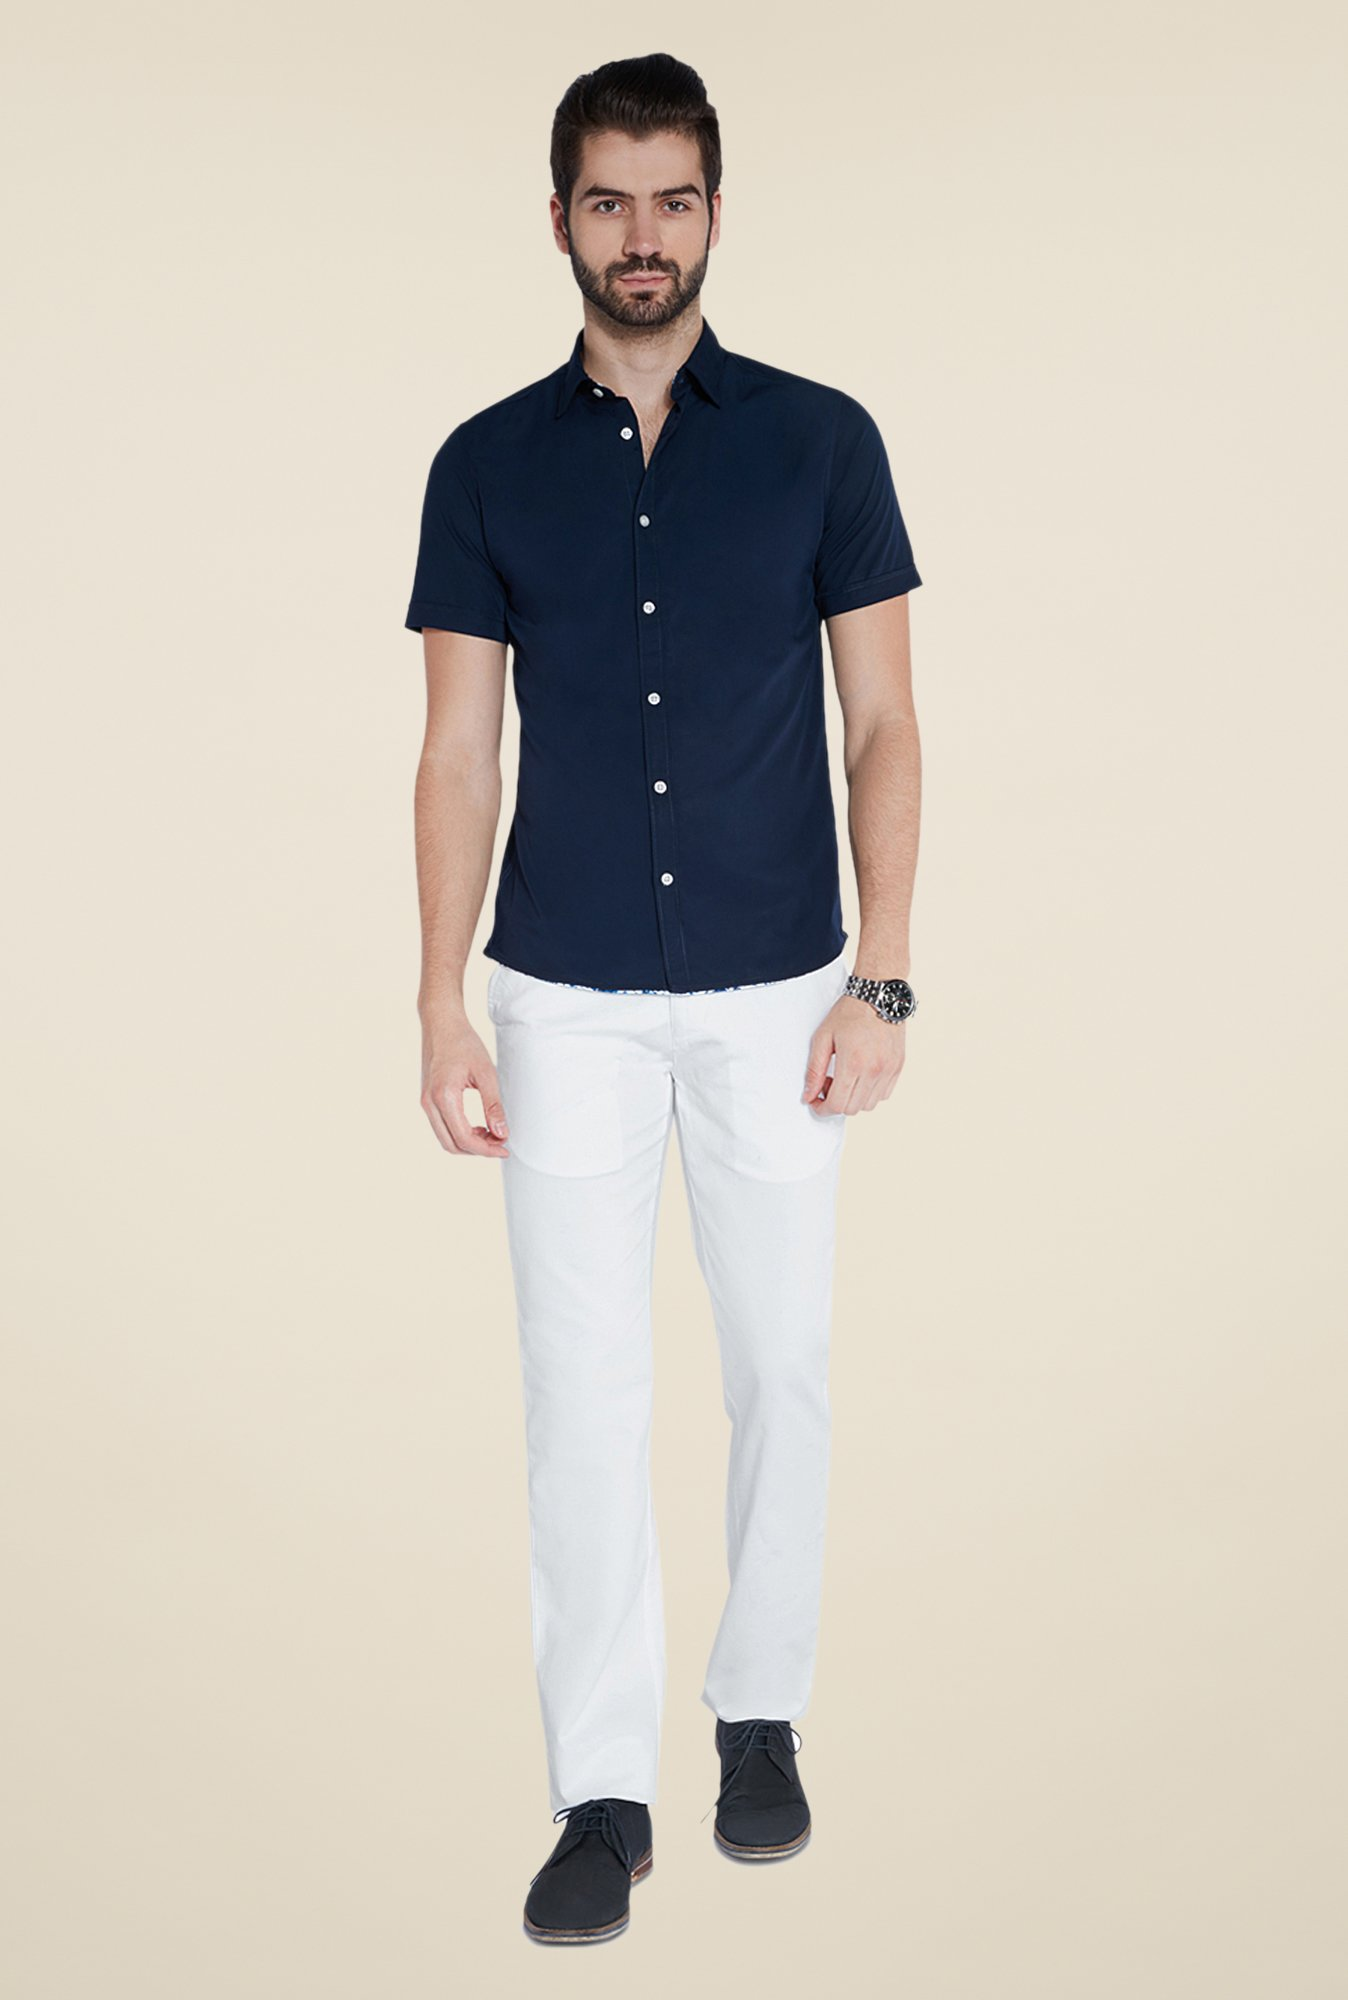 Parx White Solid Trouser